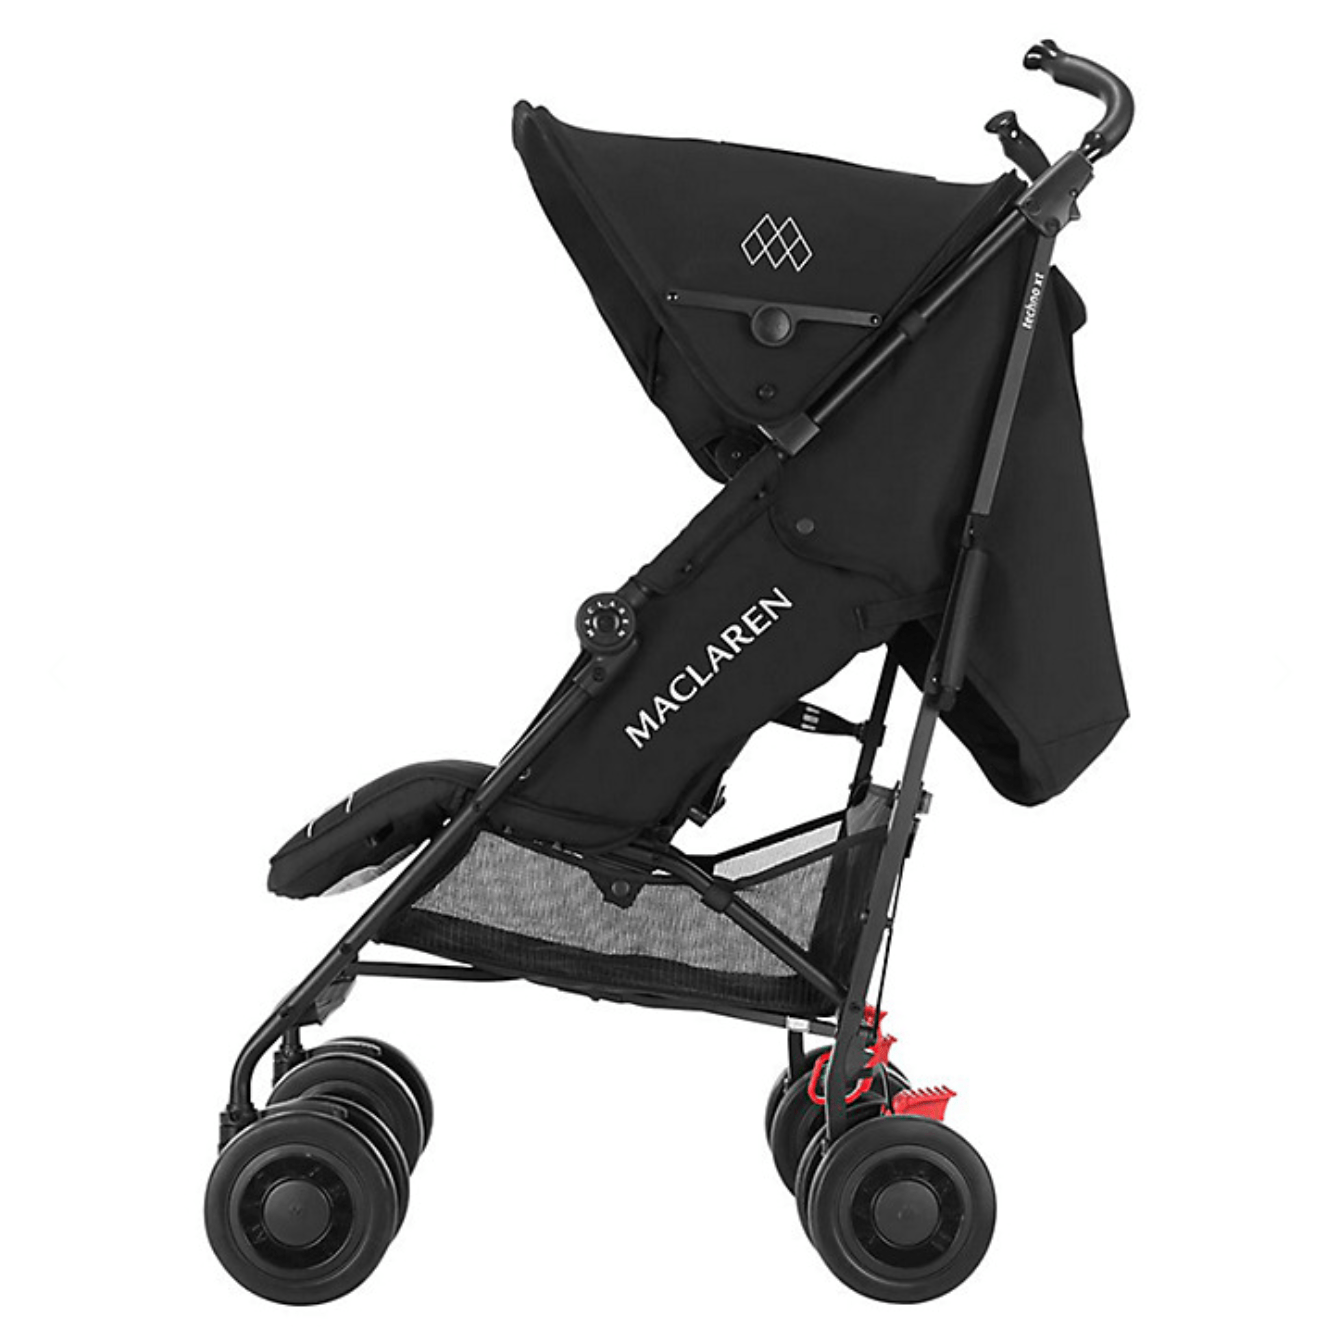 Maclaren Stroller Uk Reviews Maclaren Single Stroller Techno Xt Explore Baby Equipment Rental London Uk Airtots